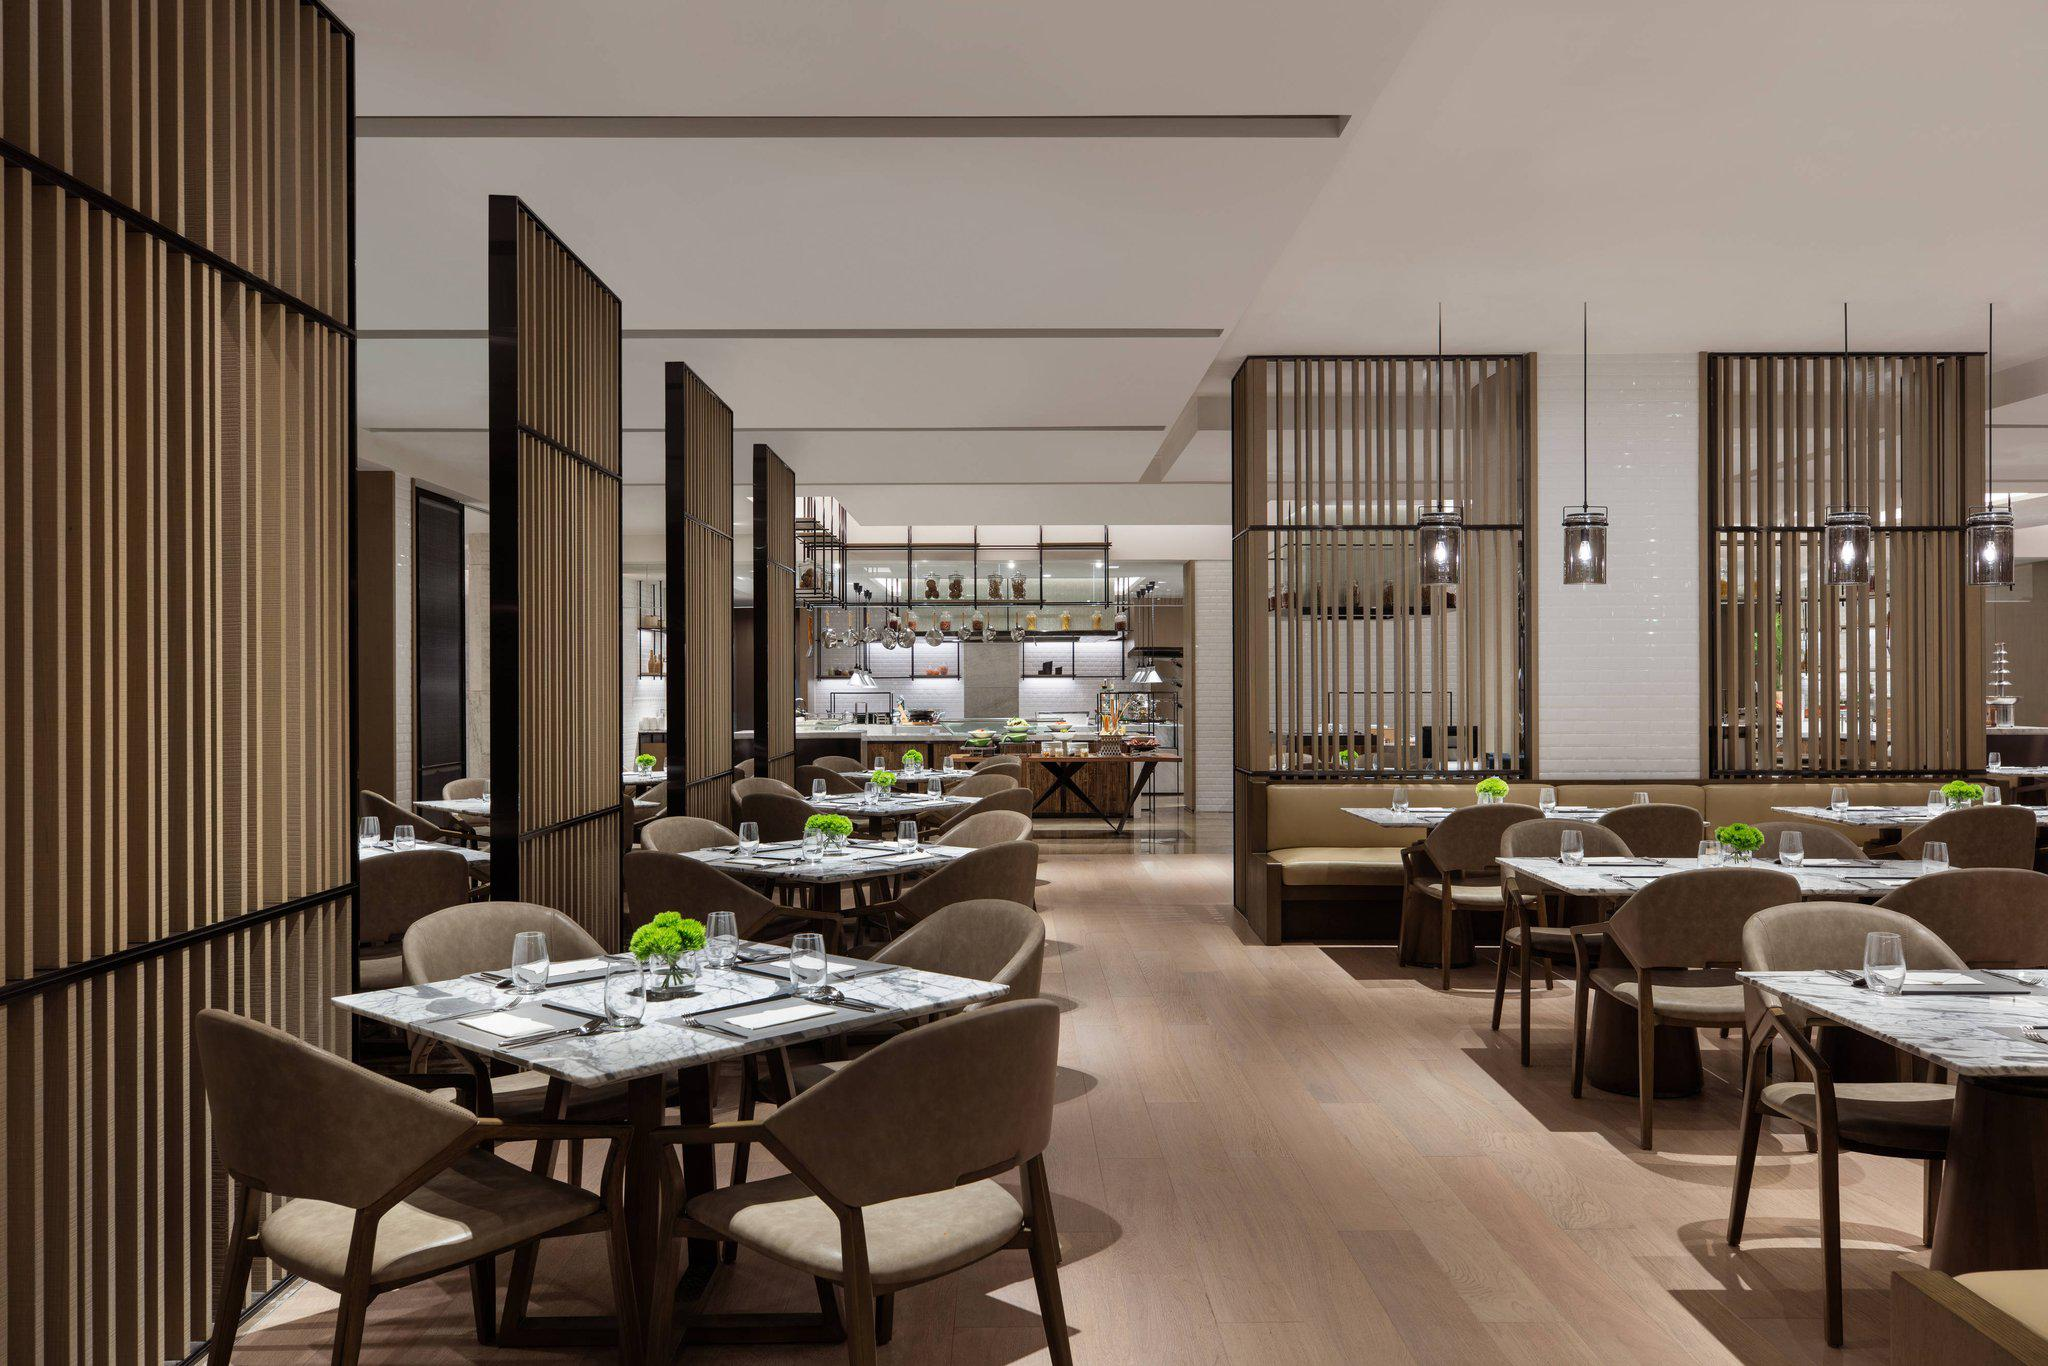 Courtyard by Marriott Shenzhen Northwest